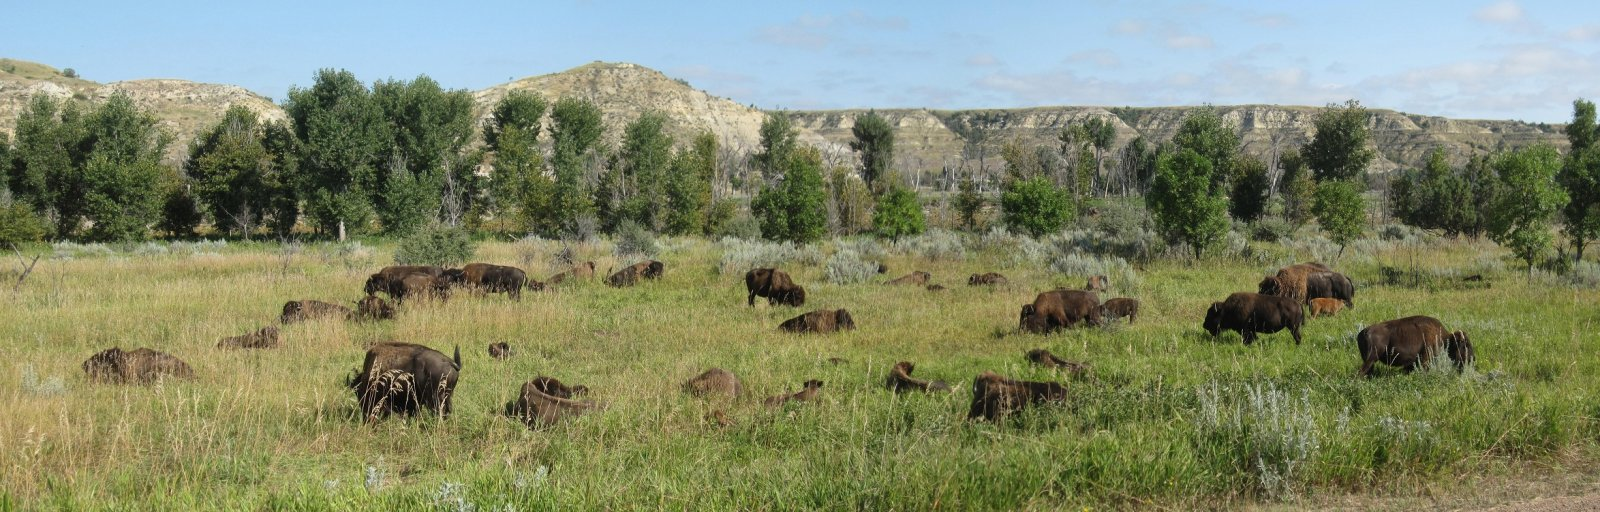 Click image for larger version  Name:TR Natl Park Buffalo Herd.jpg Views:101 Size:248.1 KB ID:177117